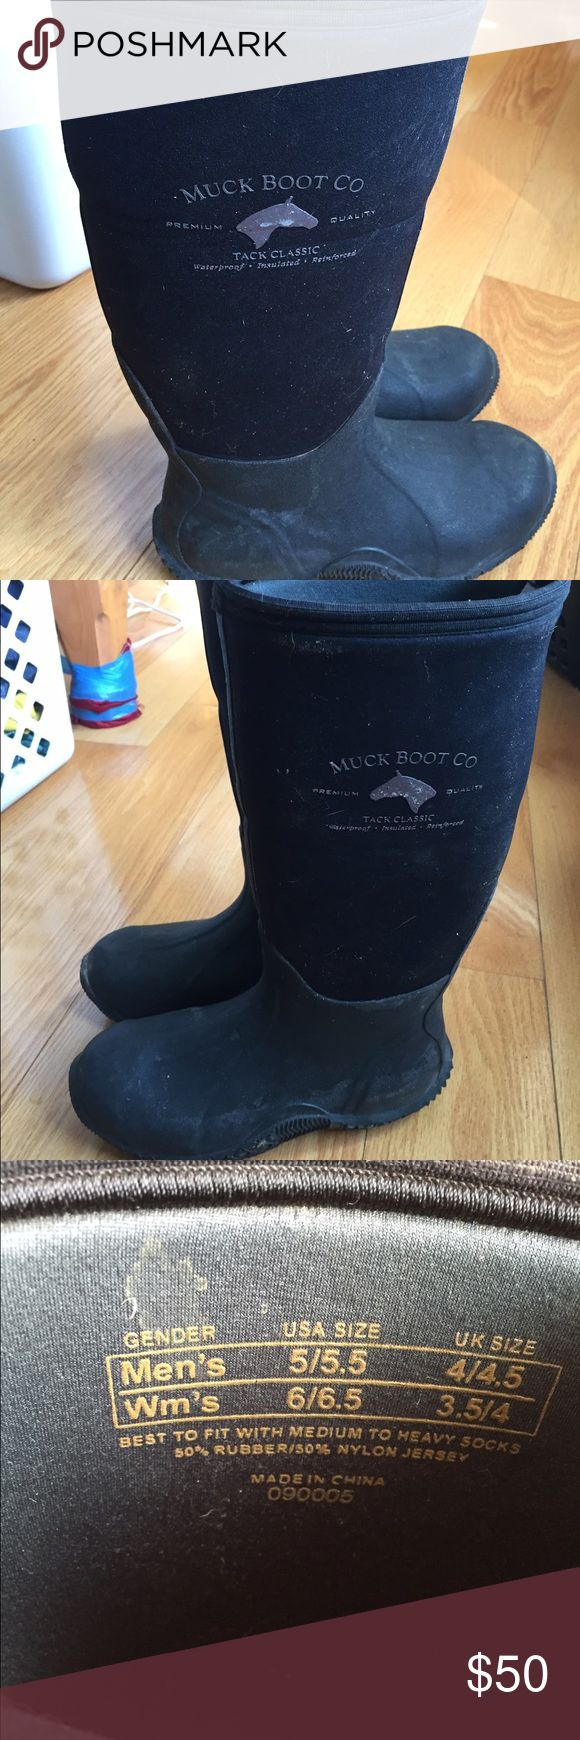 Muck boots tack classic Muck boots knee high tack classics. In good condition other than having a few stains no rips or tears. Waterproof, insulated boots size 6-6.5 women's muck Shoes Winter & Rain Boots